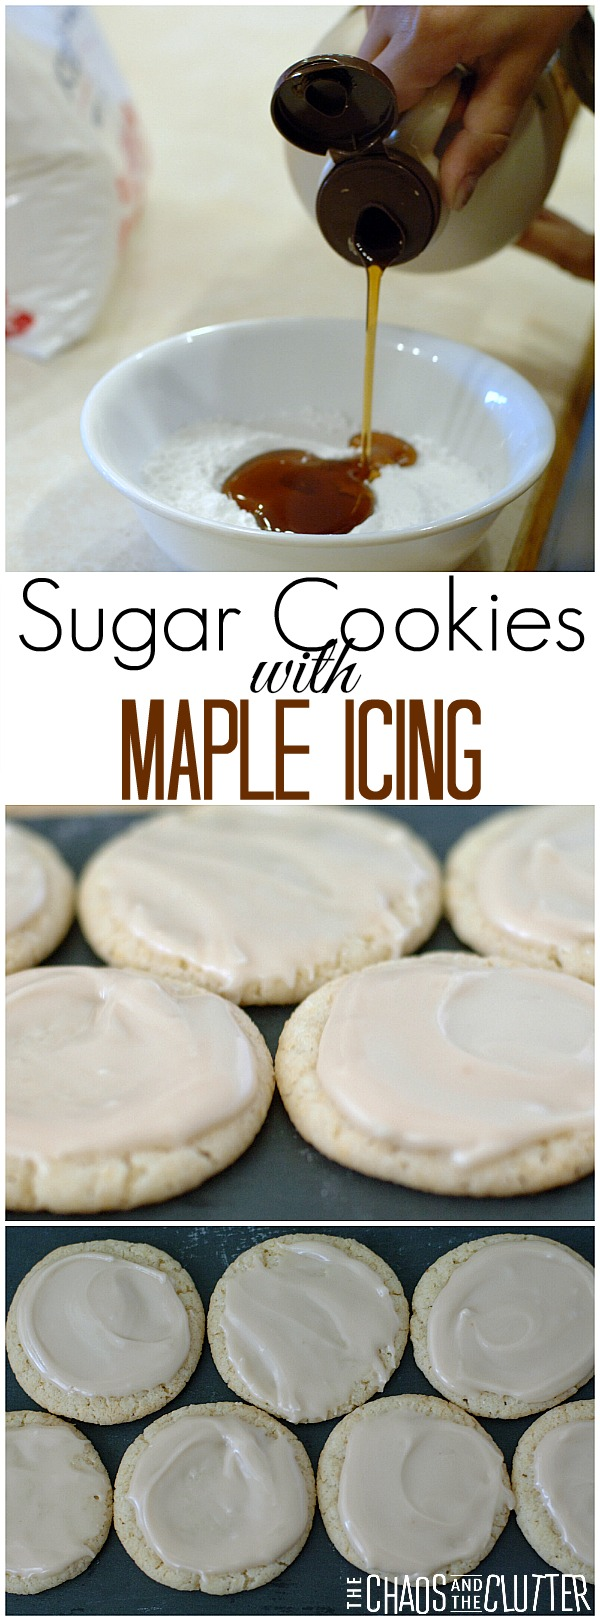 Sugar Cookies with Maple Icing. The cookies are just an excuse to eat the icing without a spoon. It's that good!